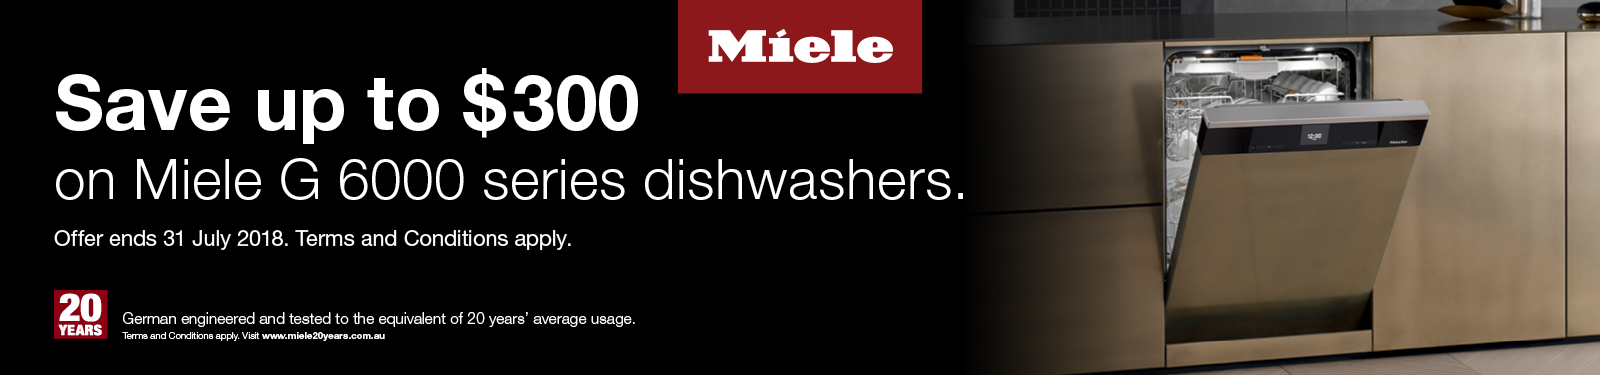 Miele 300 off Dishwashers